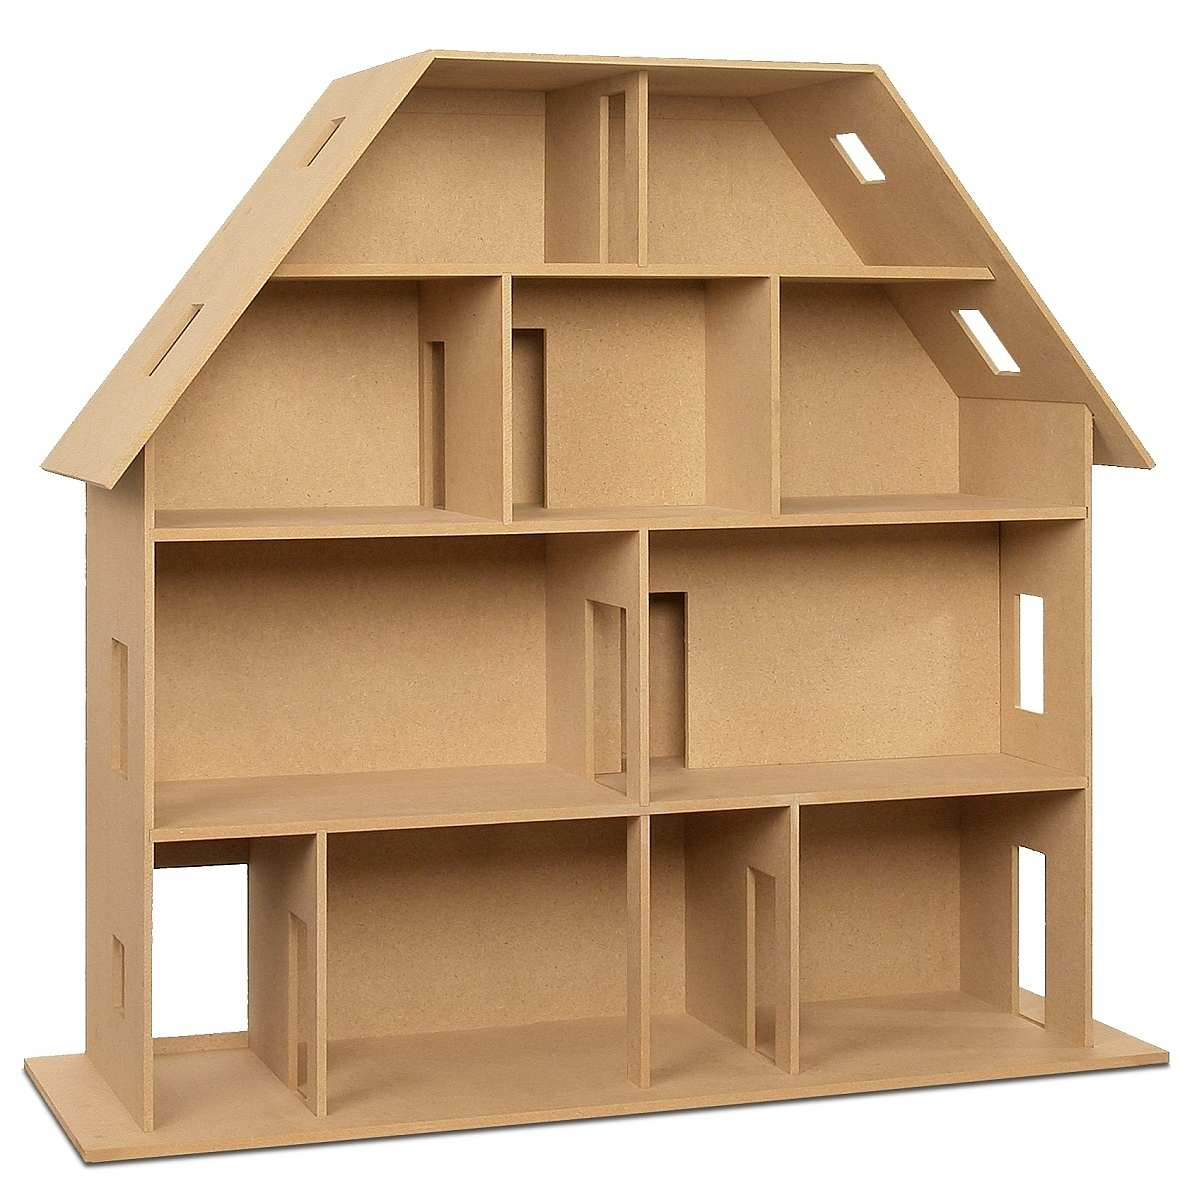 Villa Tara - MDF construction kit